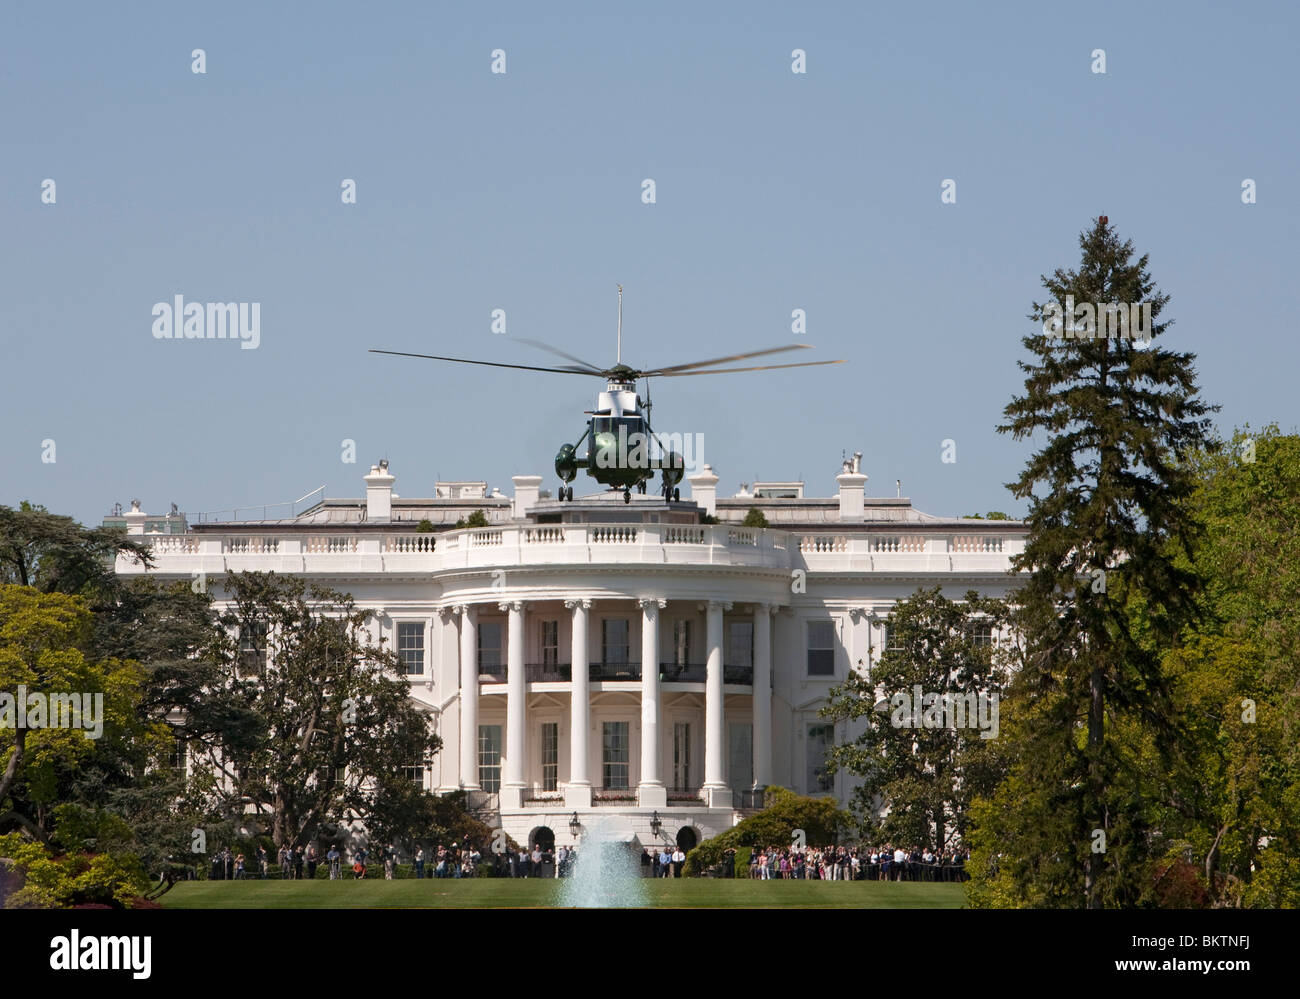 Washington, DC - Marine One helicopter lifts off from the White House south lawn. - Stock Image